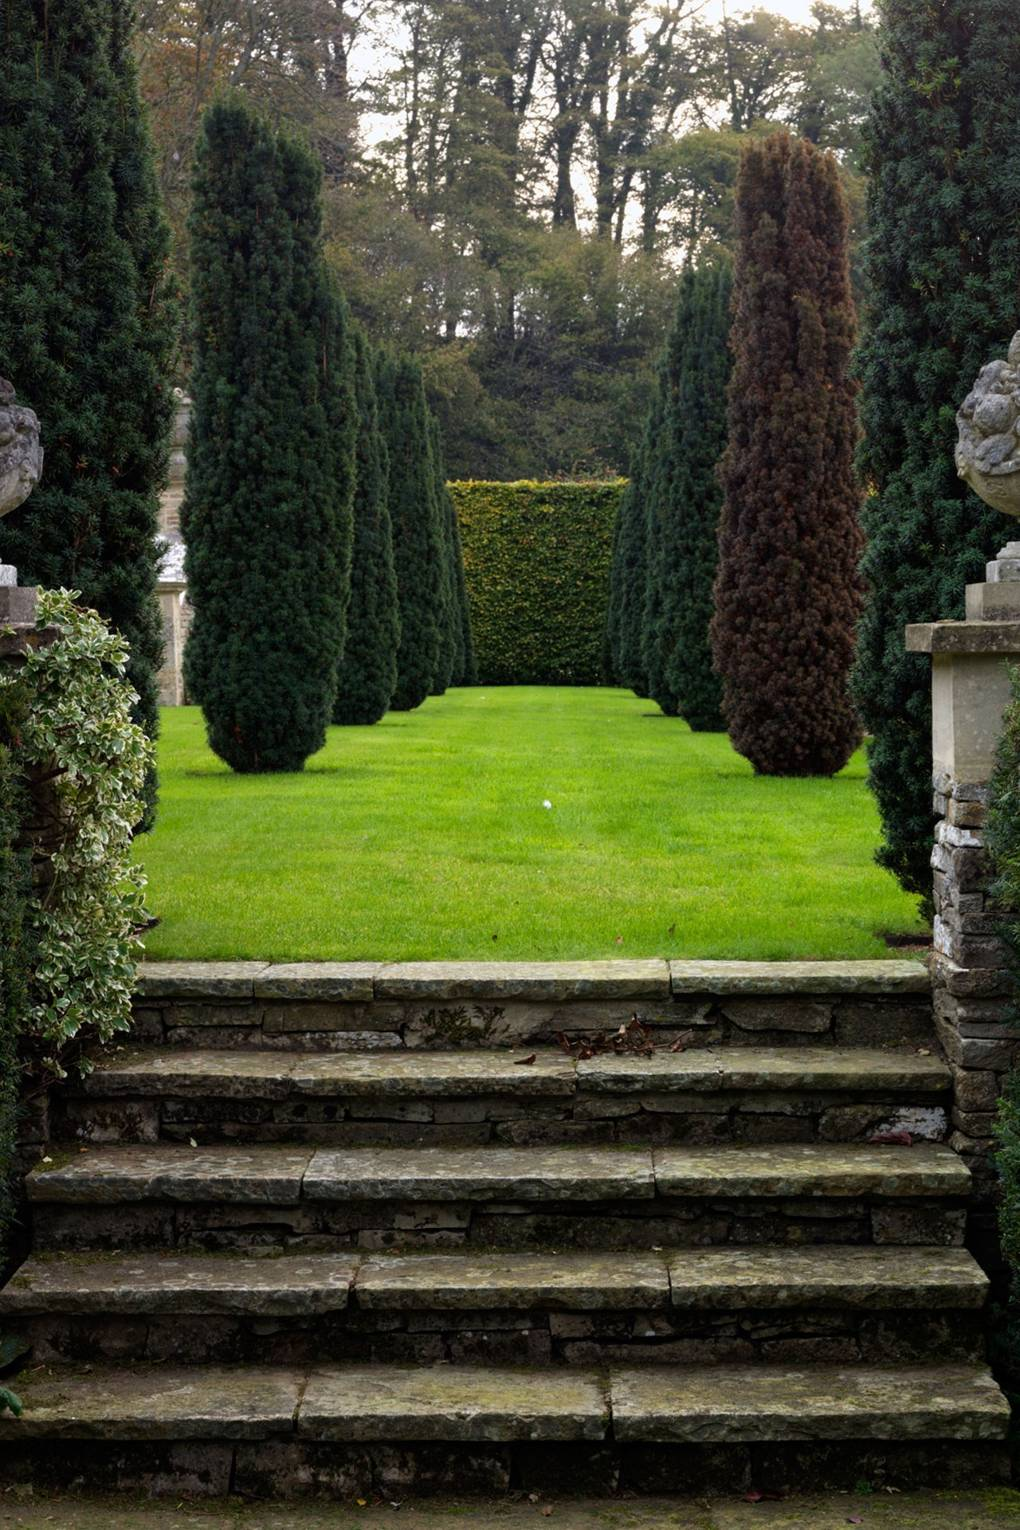 ROSE & IVY Journal Garden Dreamer | A Garden Where Topiaries Are The Star